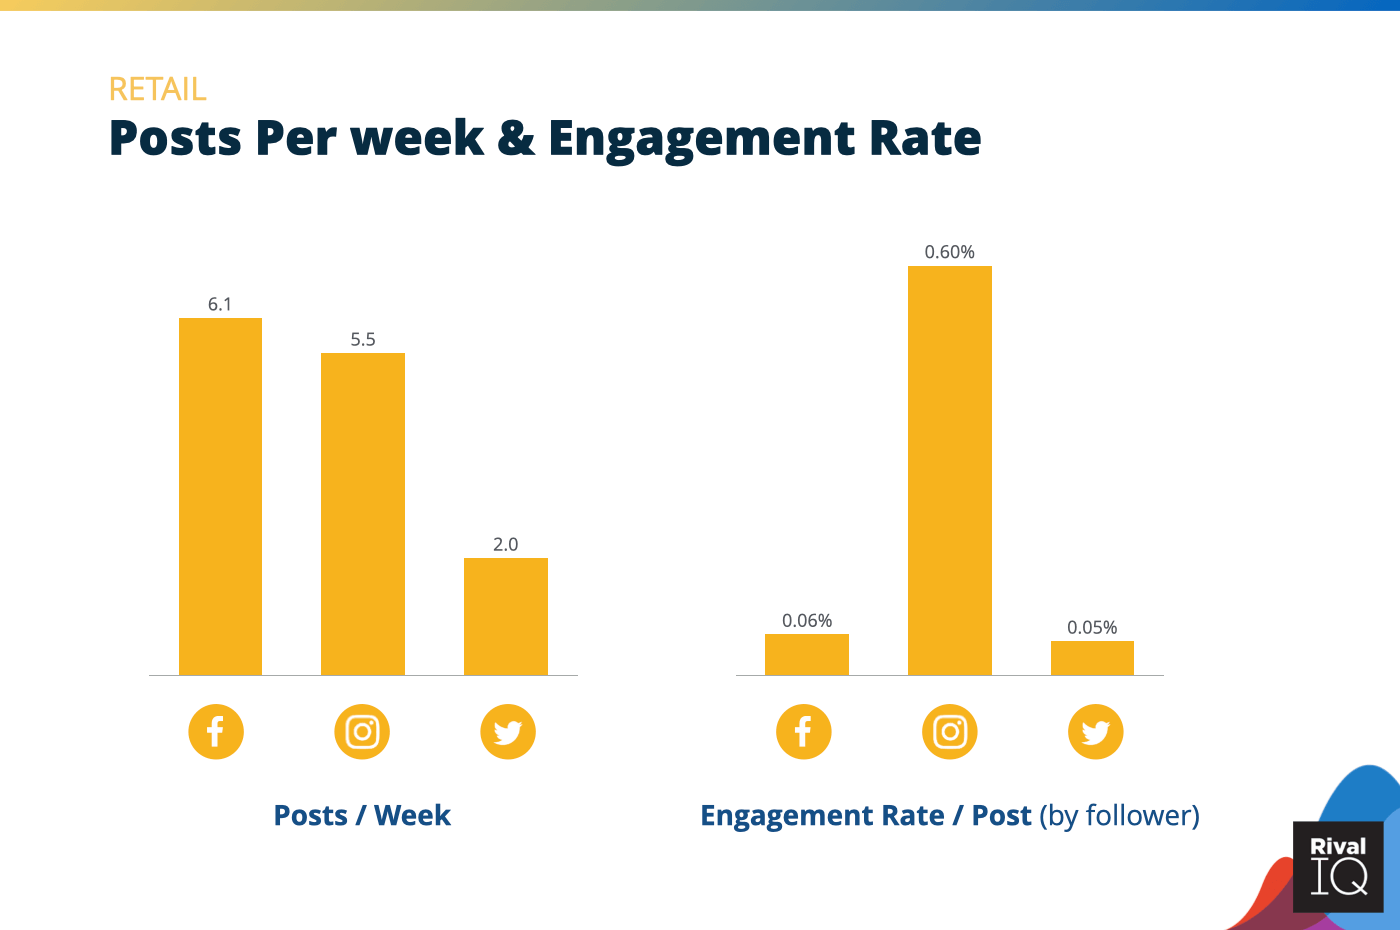 Chart of Posts per week and engagement rate per post across all channels, Retail